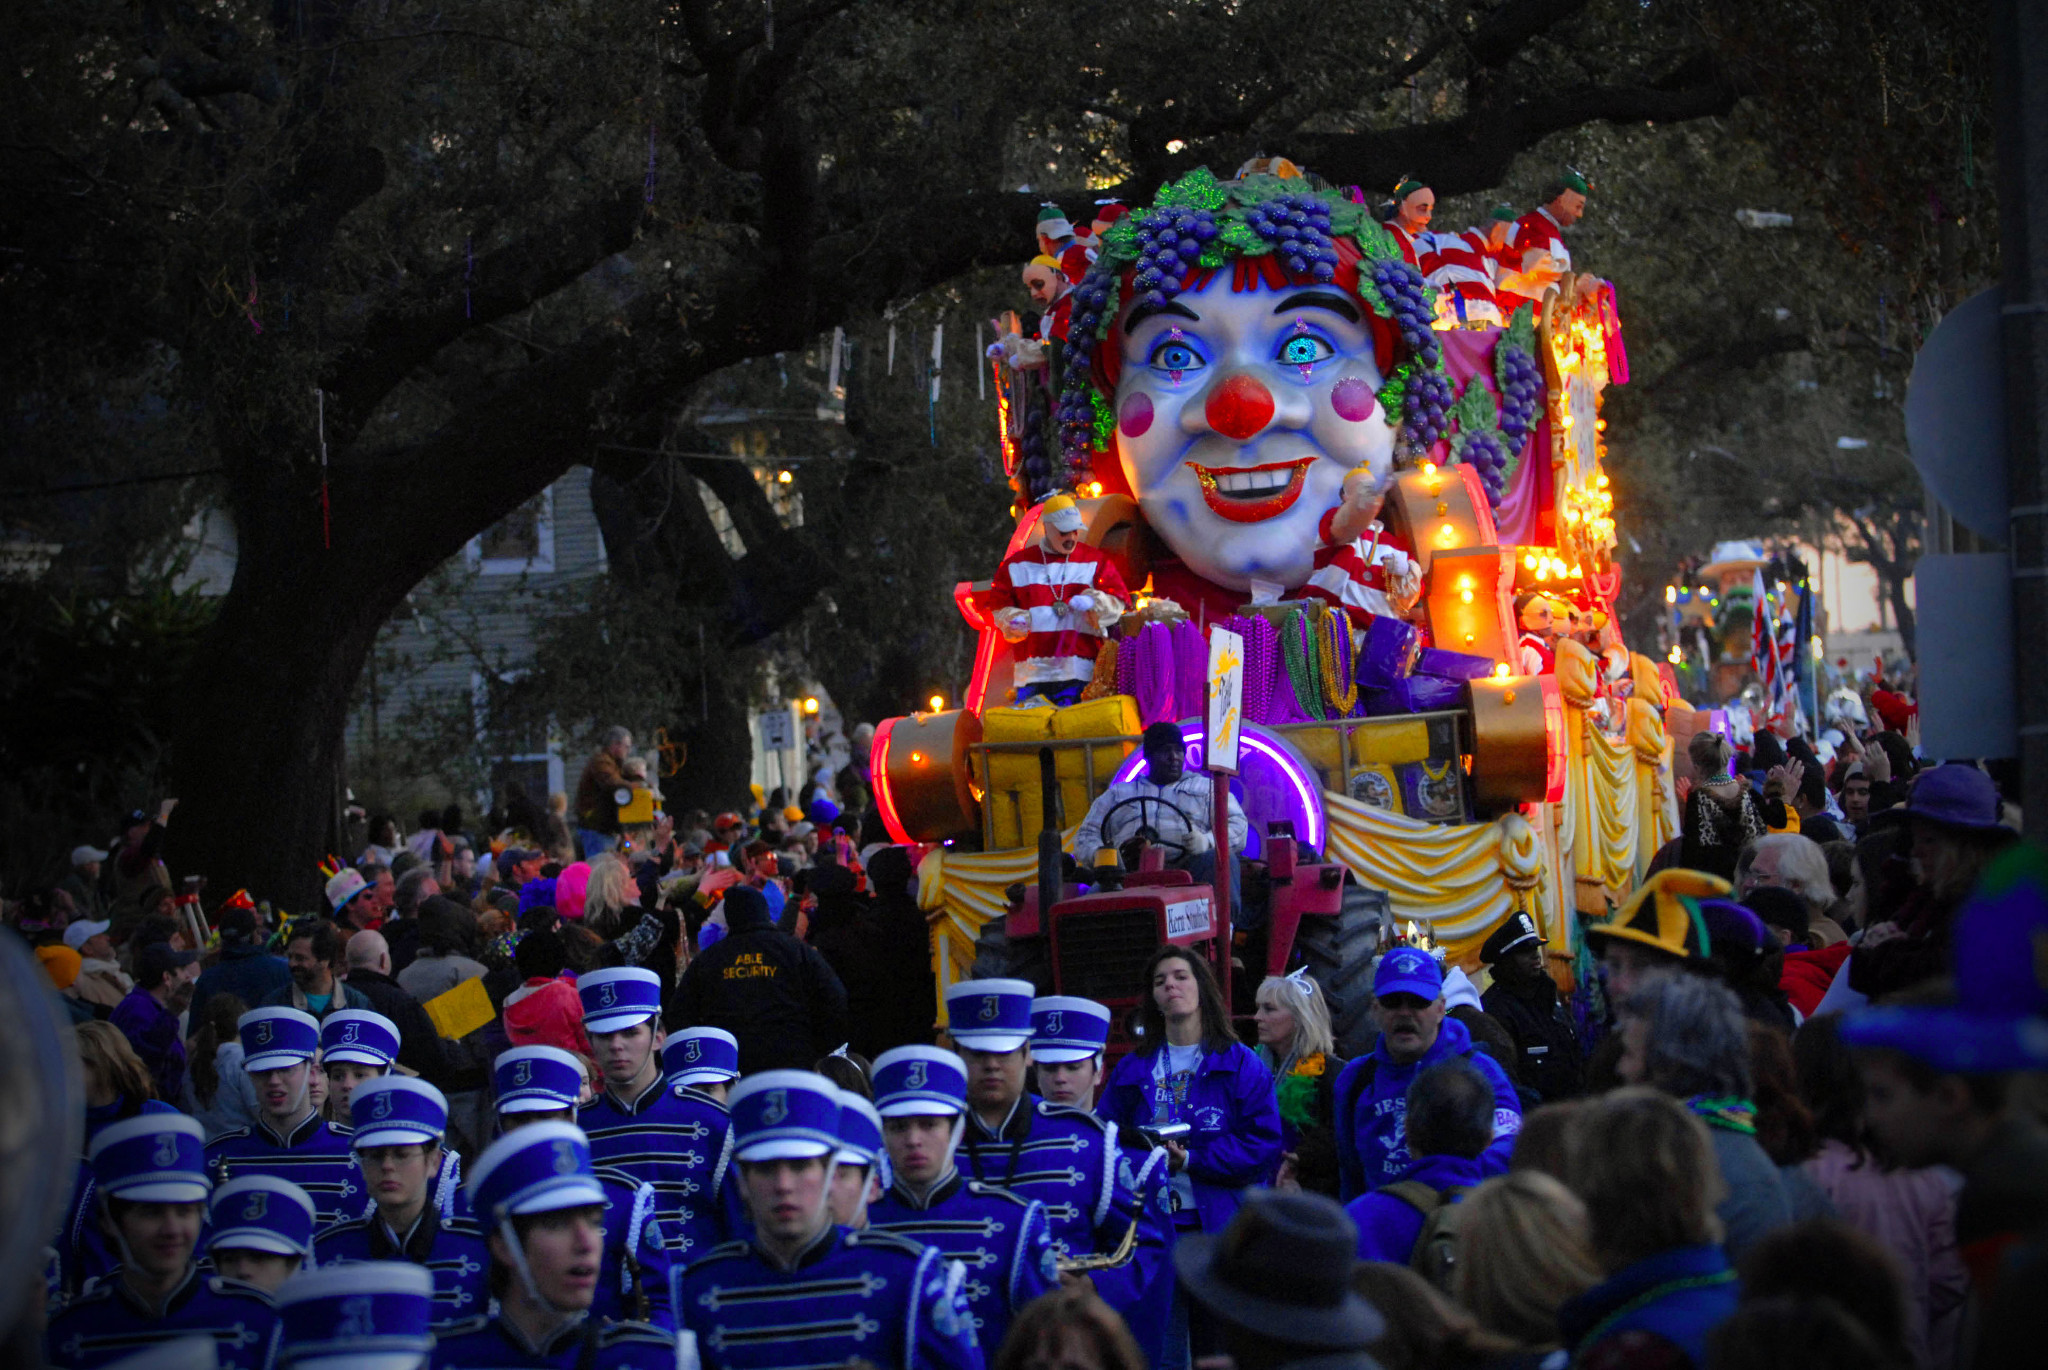 A float and marching band roll down St. Charles Avenue during the Bacchus parade. (Photo: Cheryl Gerber)